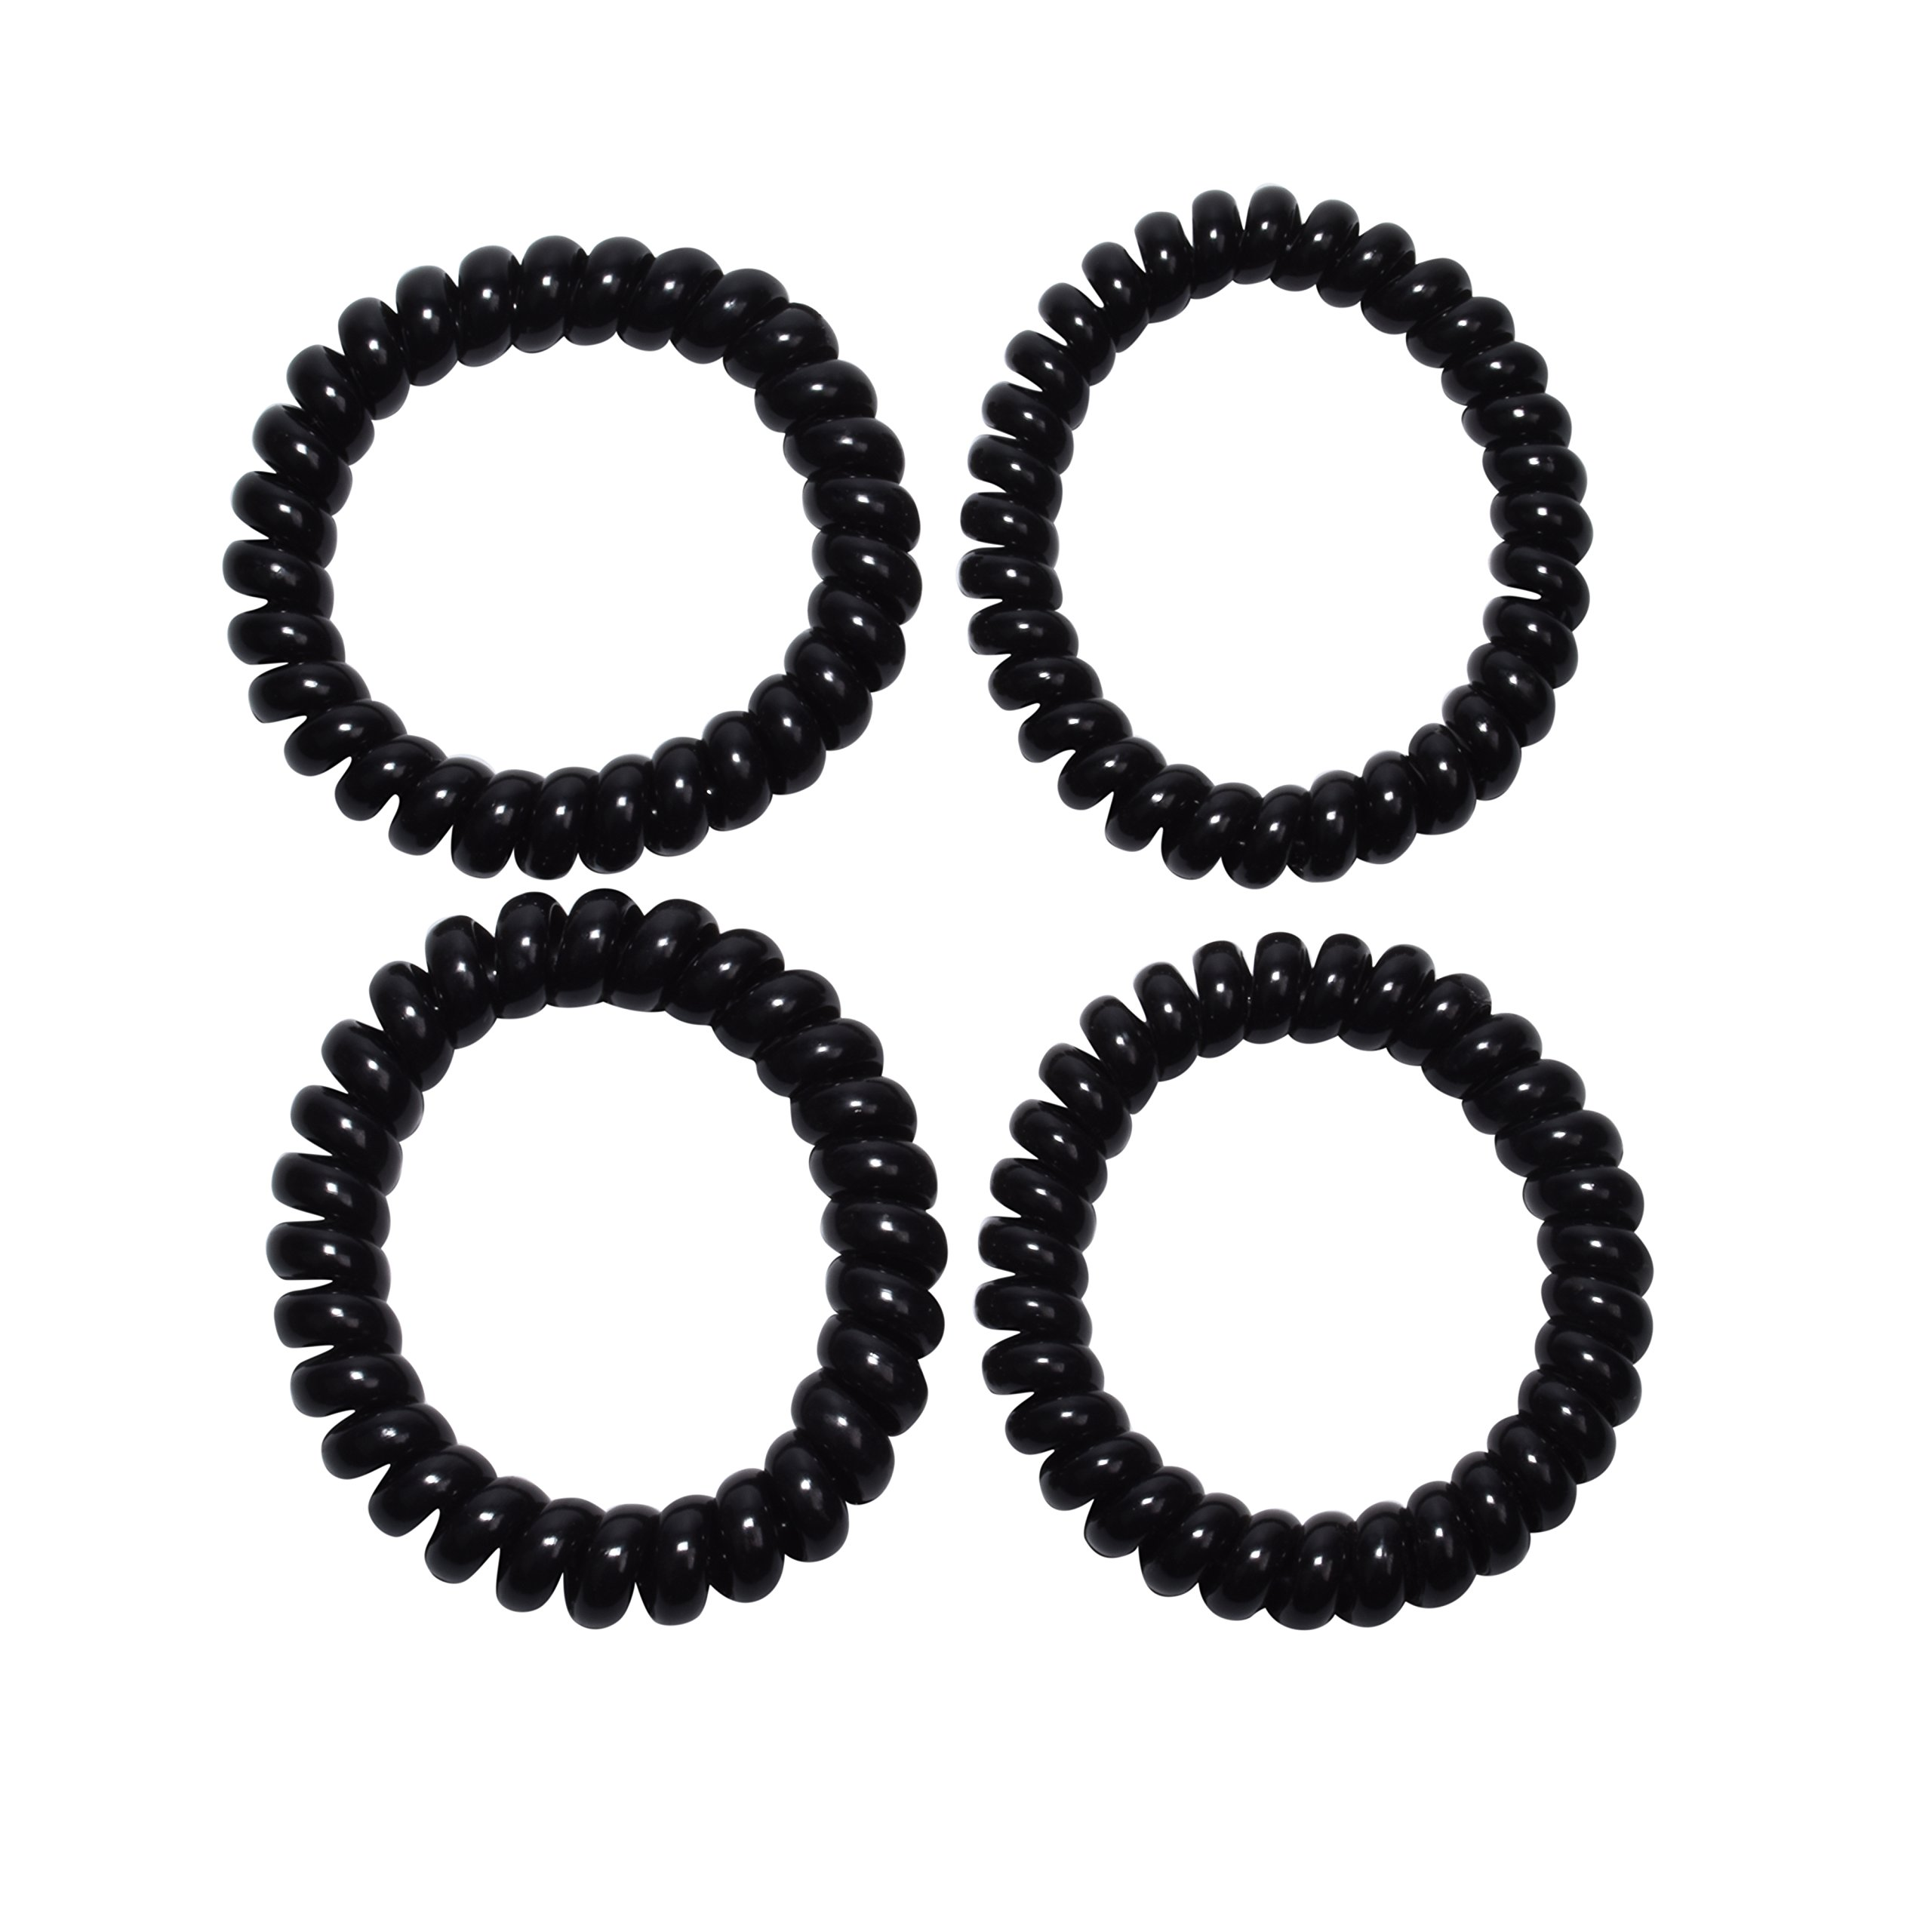 Spiralz Chewable Fidget set of 4 Bracelets Calming for Autism, ADHD, Sensory Processing, Special Needs, Sensory Motor Needs for Boys and Girls- Youth-sized, For Light Chewers Only- by chubuddy (Black)